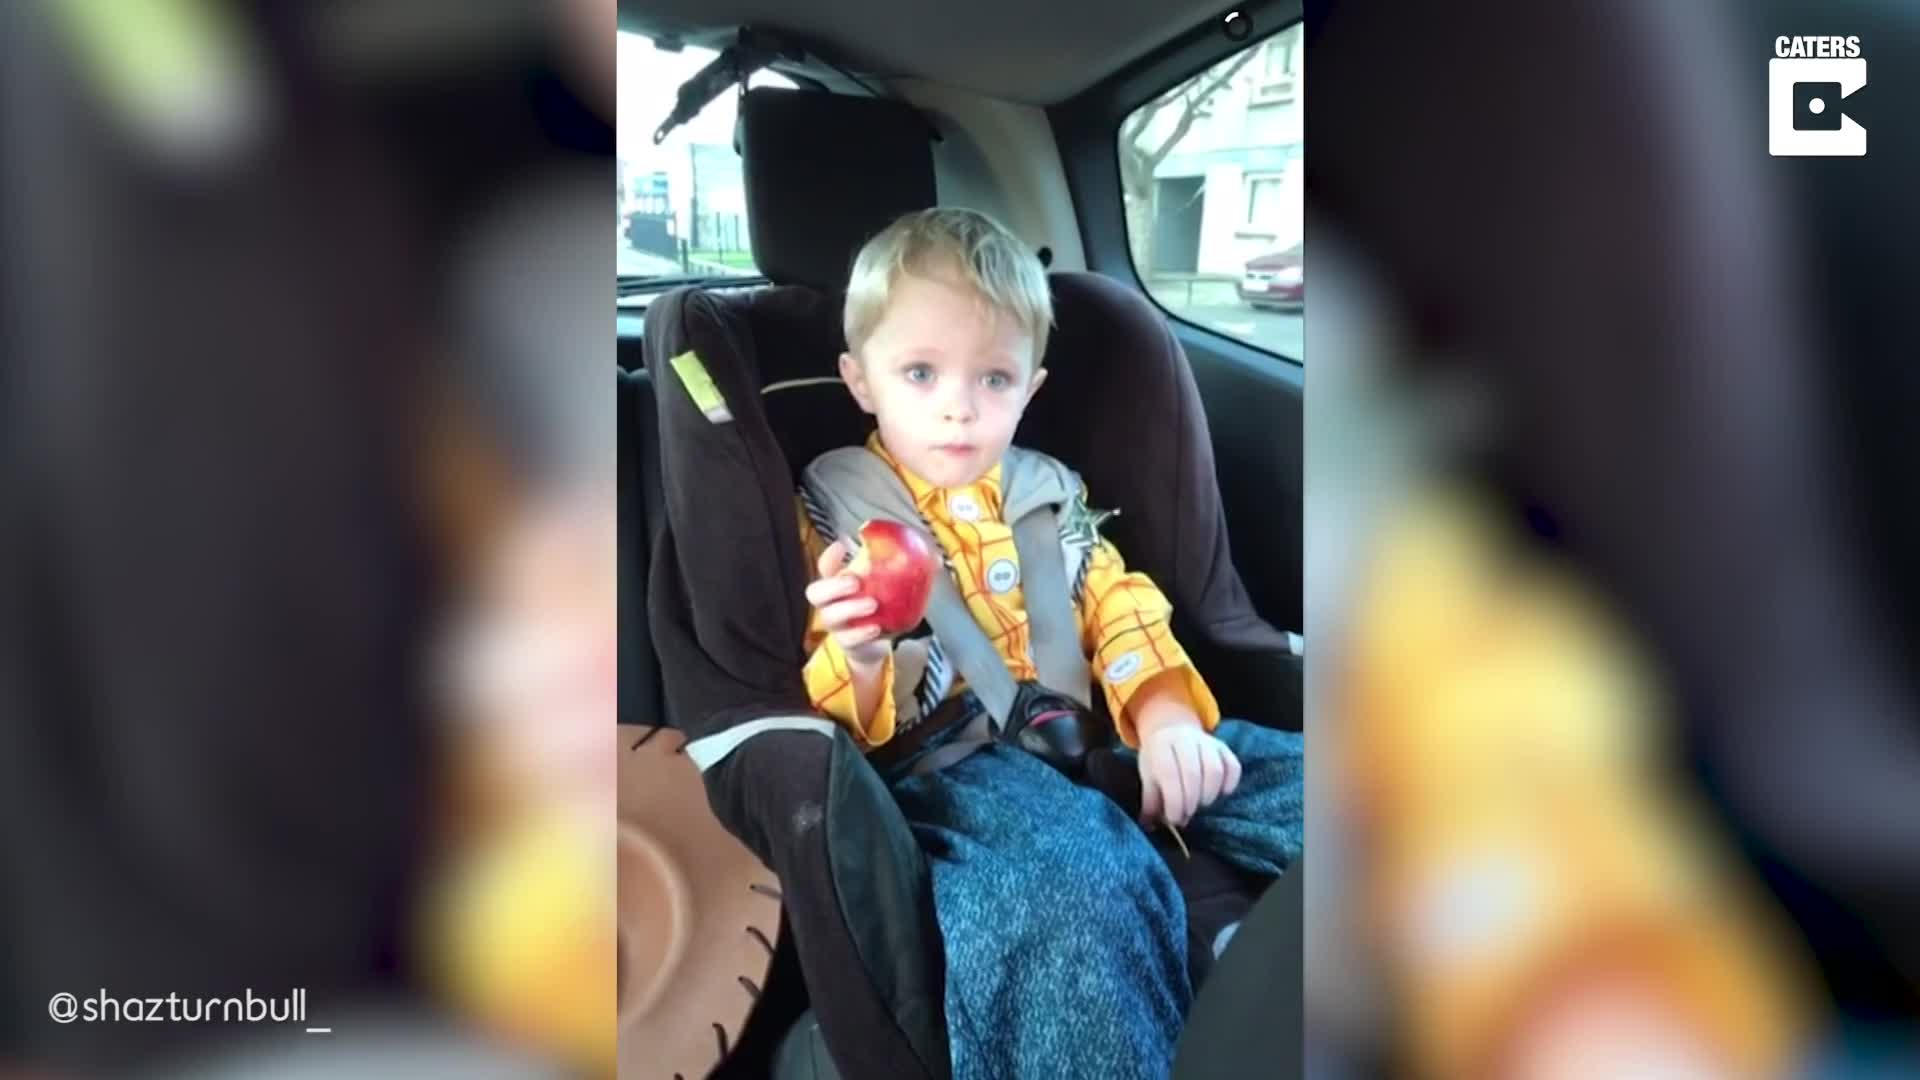 COMICAL THREE-YEAR-OLD DOESN'T CRACK UNDER PRESSURE AFTER BEING QUESTIONED BY HIS GRANDMOTHER ABOUT STOLEN BIKE